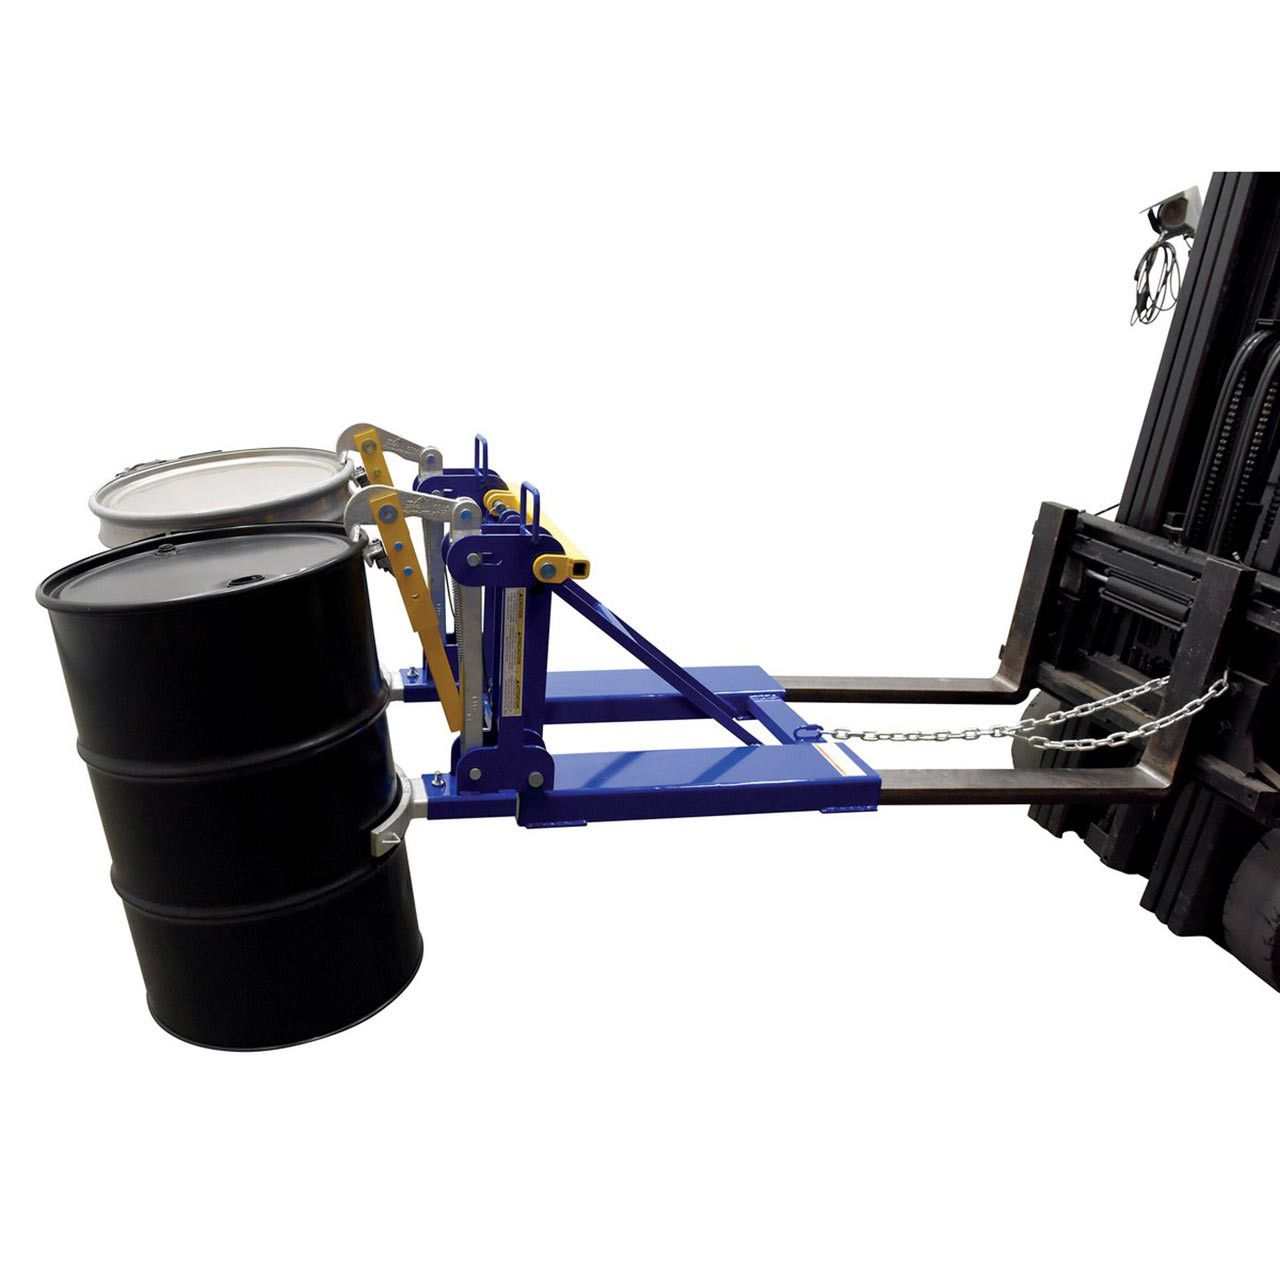 Automatic Drum Lifter Side View With Drums